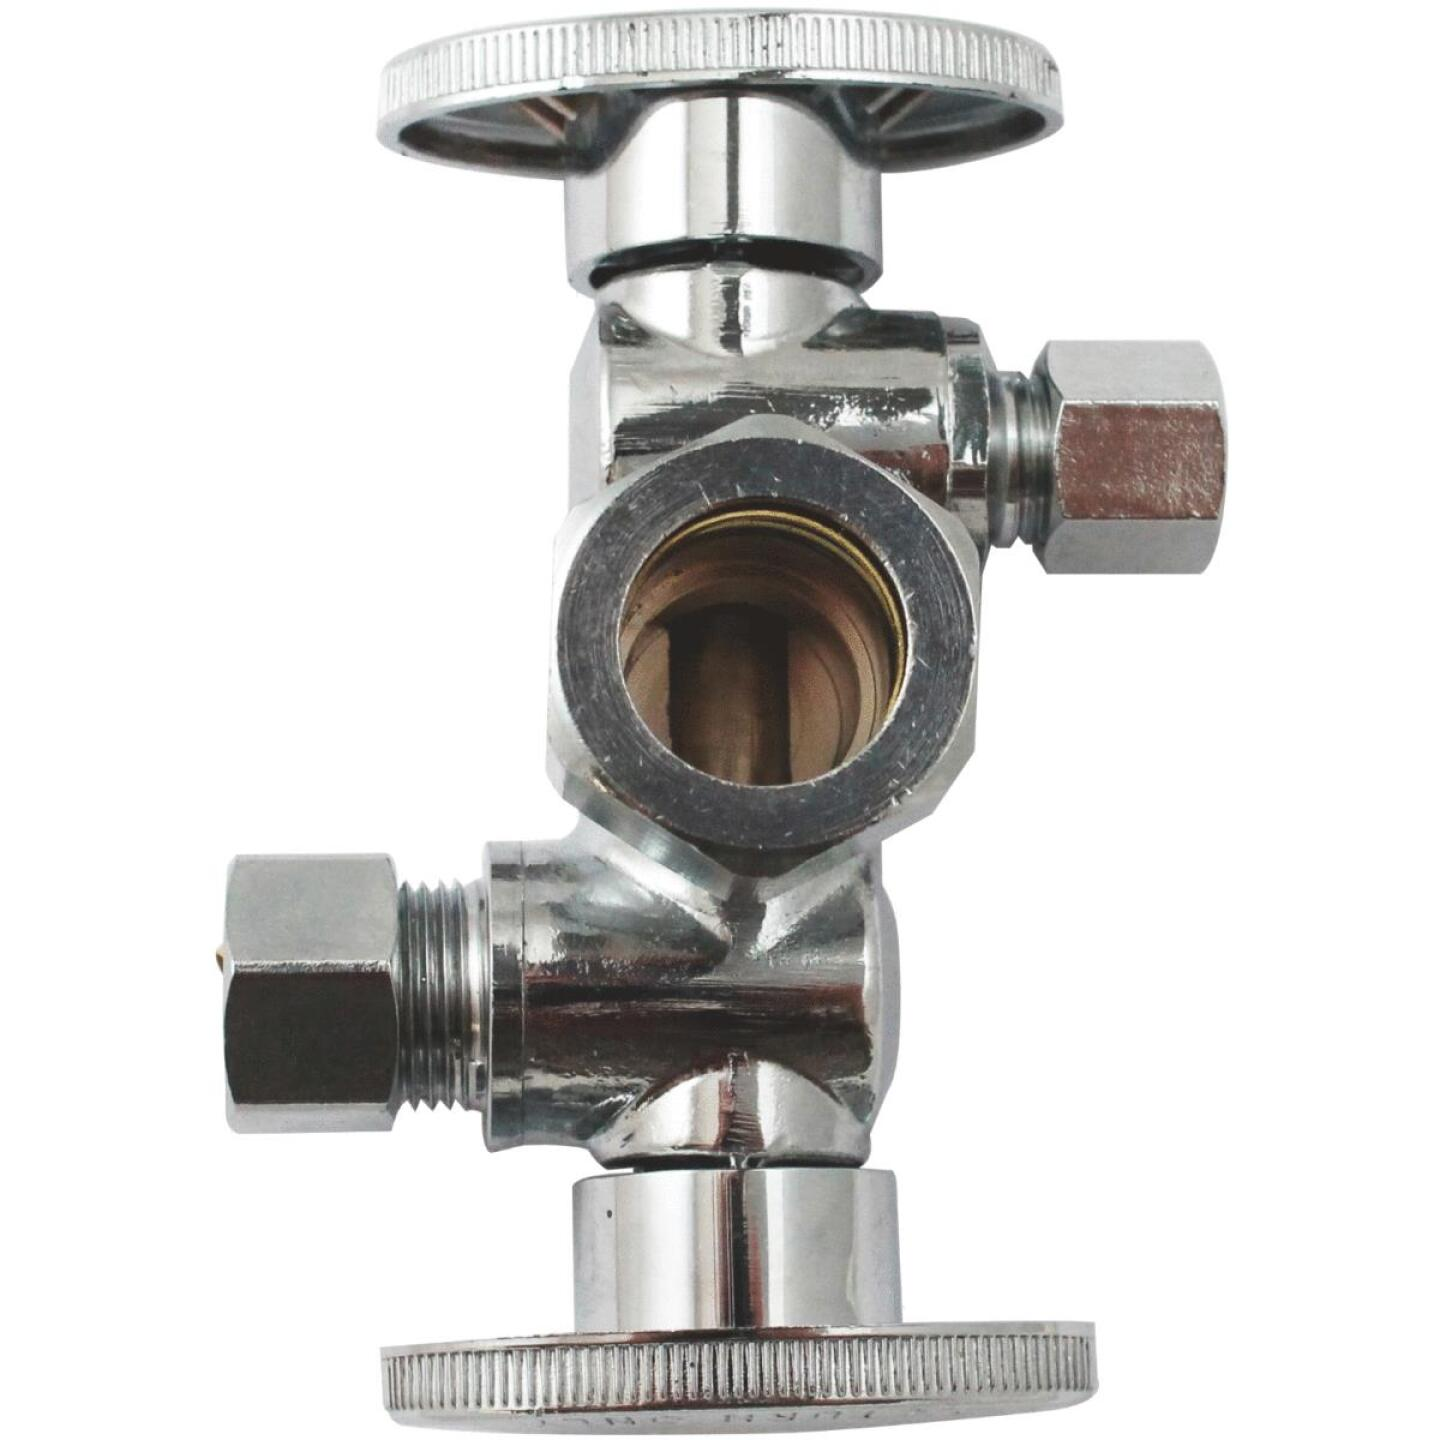 "Keeney 5/8"" OD x 3/8"" OD x 1/4"" OD Quarter Turn Dual Shut-Off/Dual Outlet Valve Image 1"